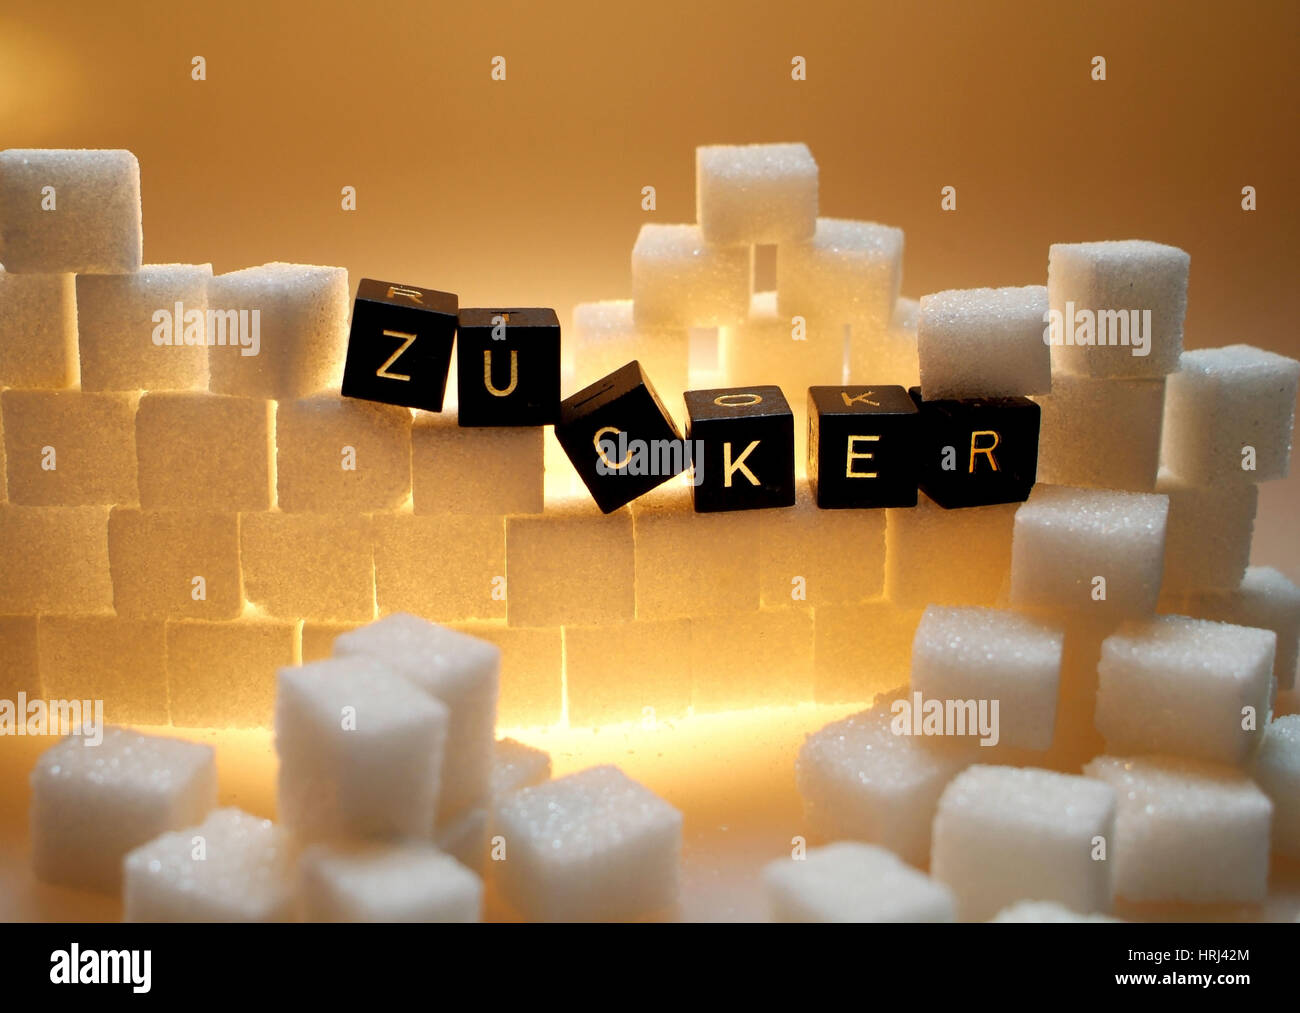 Symbolbild Zucker Symbolic Sugar Stock Photos Symbolbild Zucker